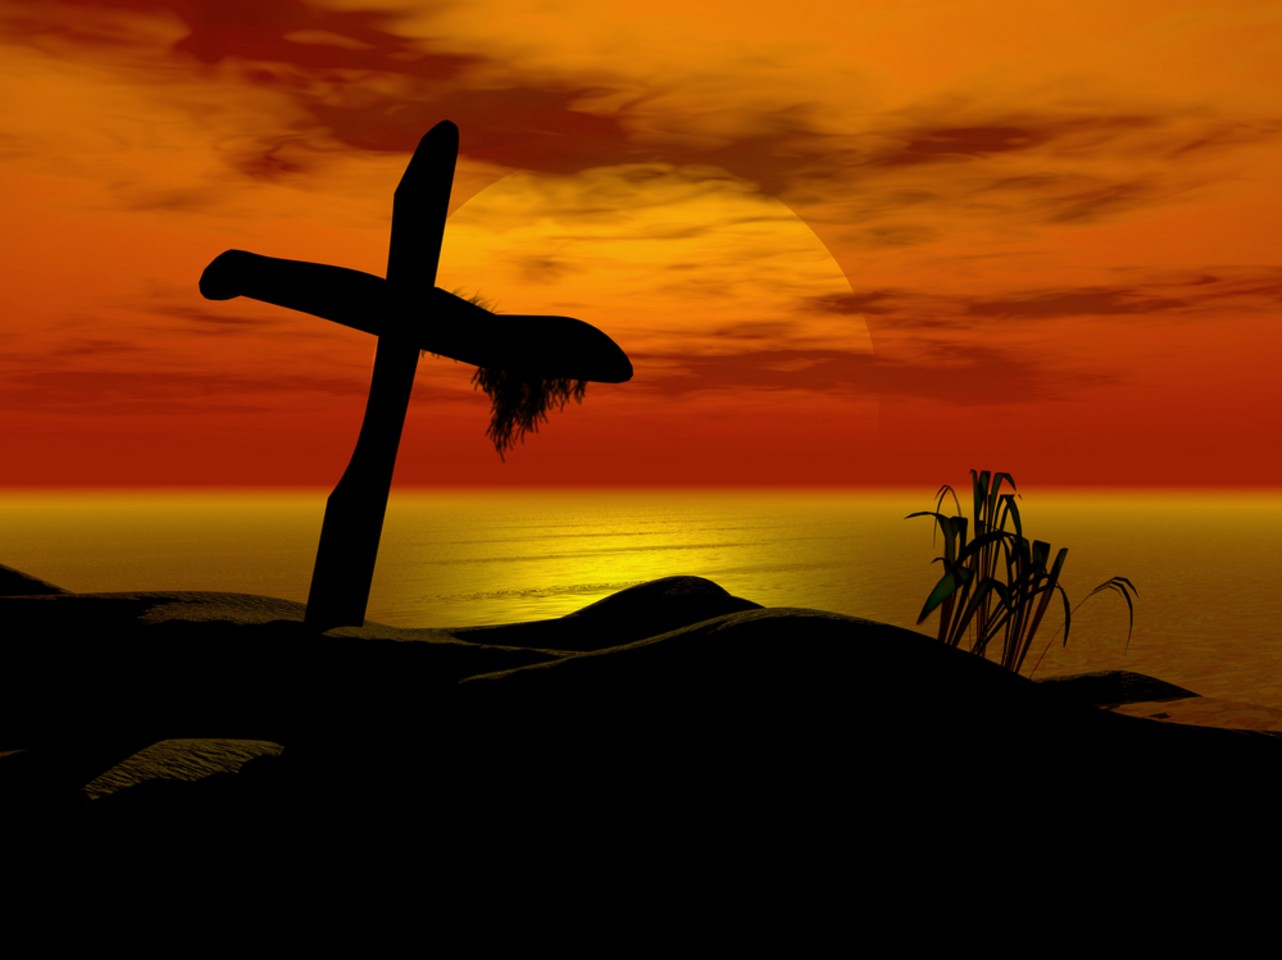 Prince of peace sunset cross wallpaper background